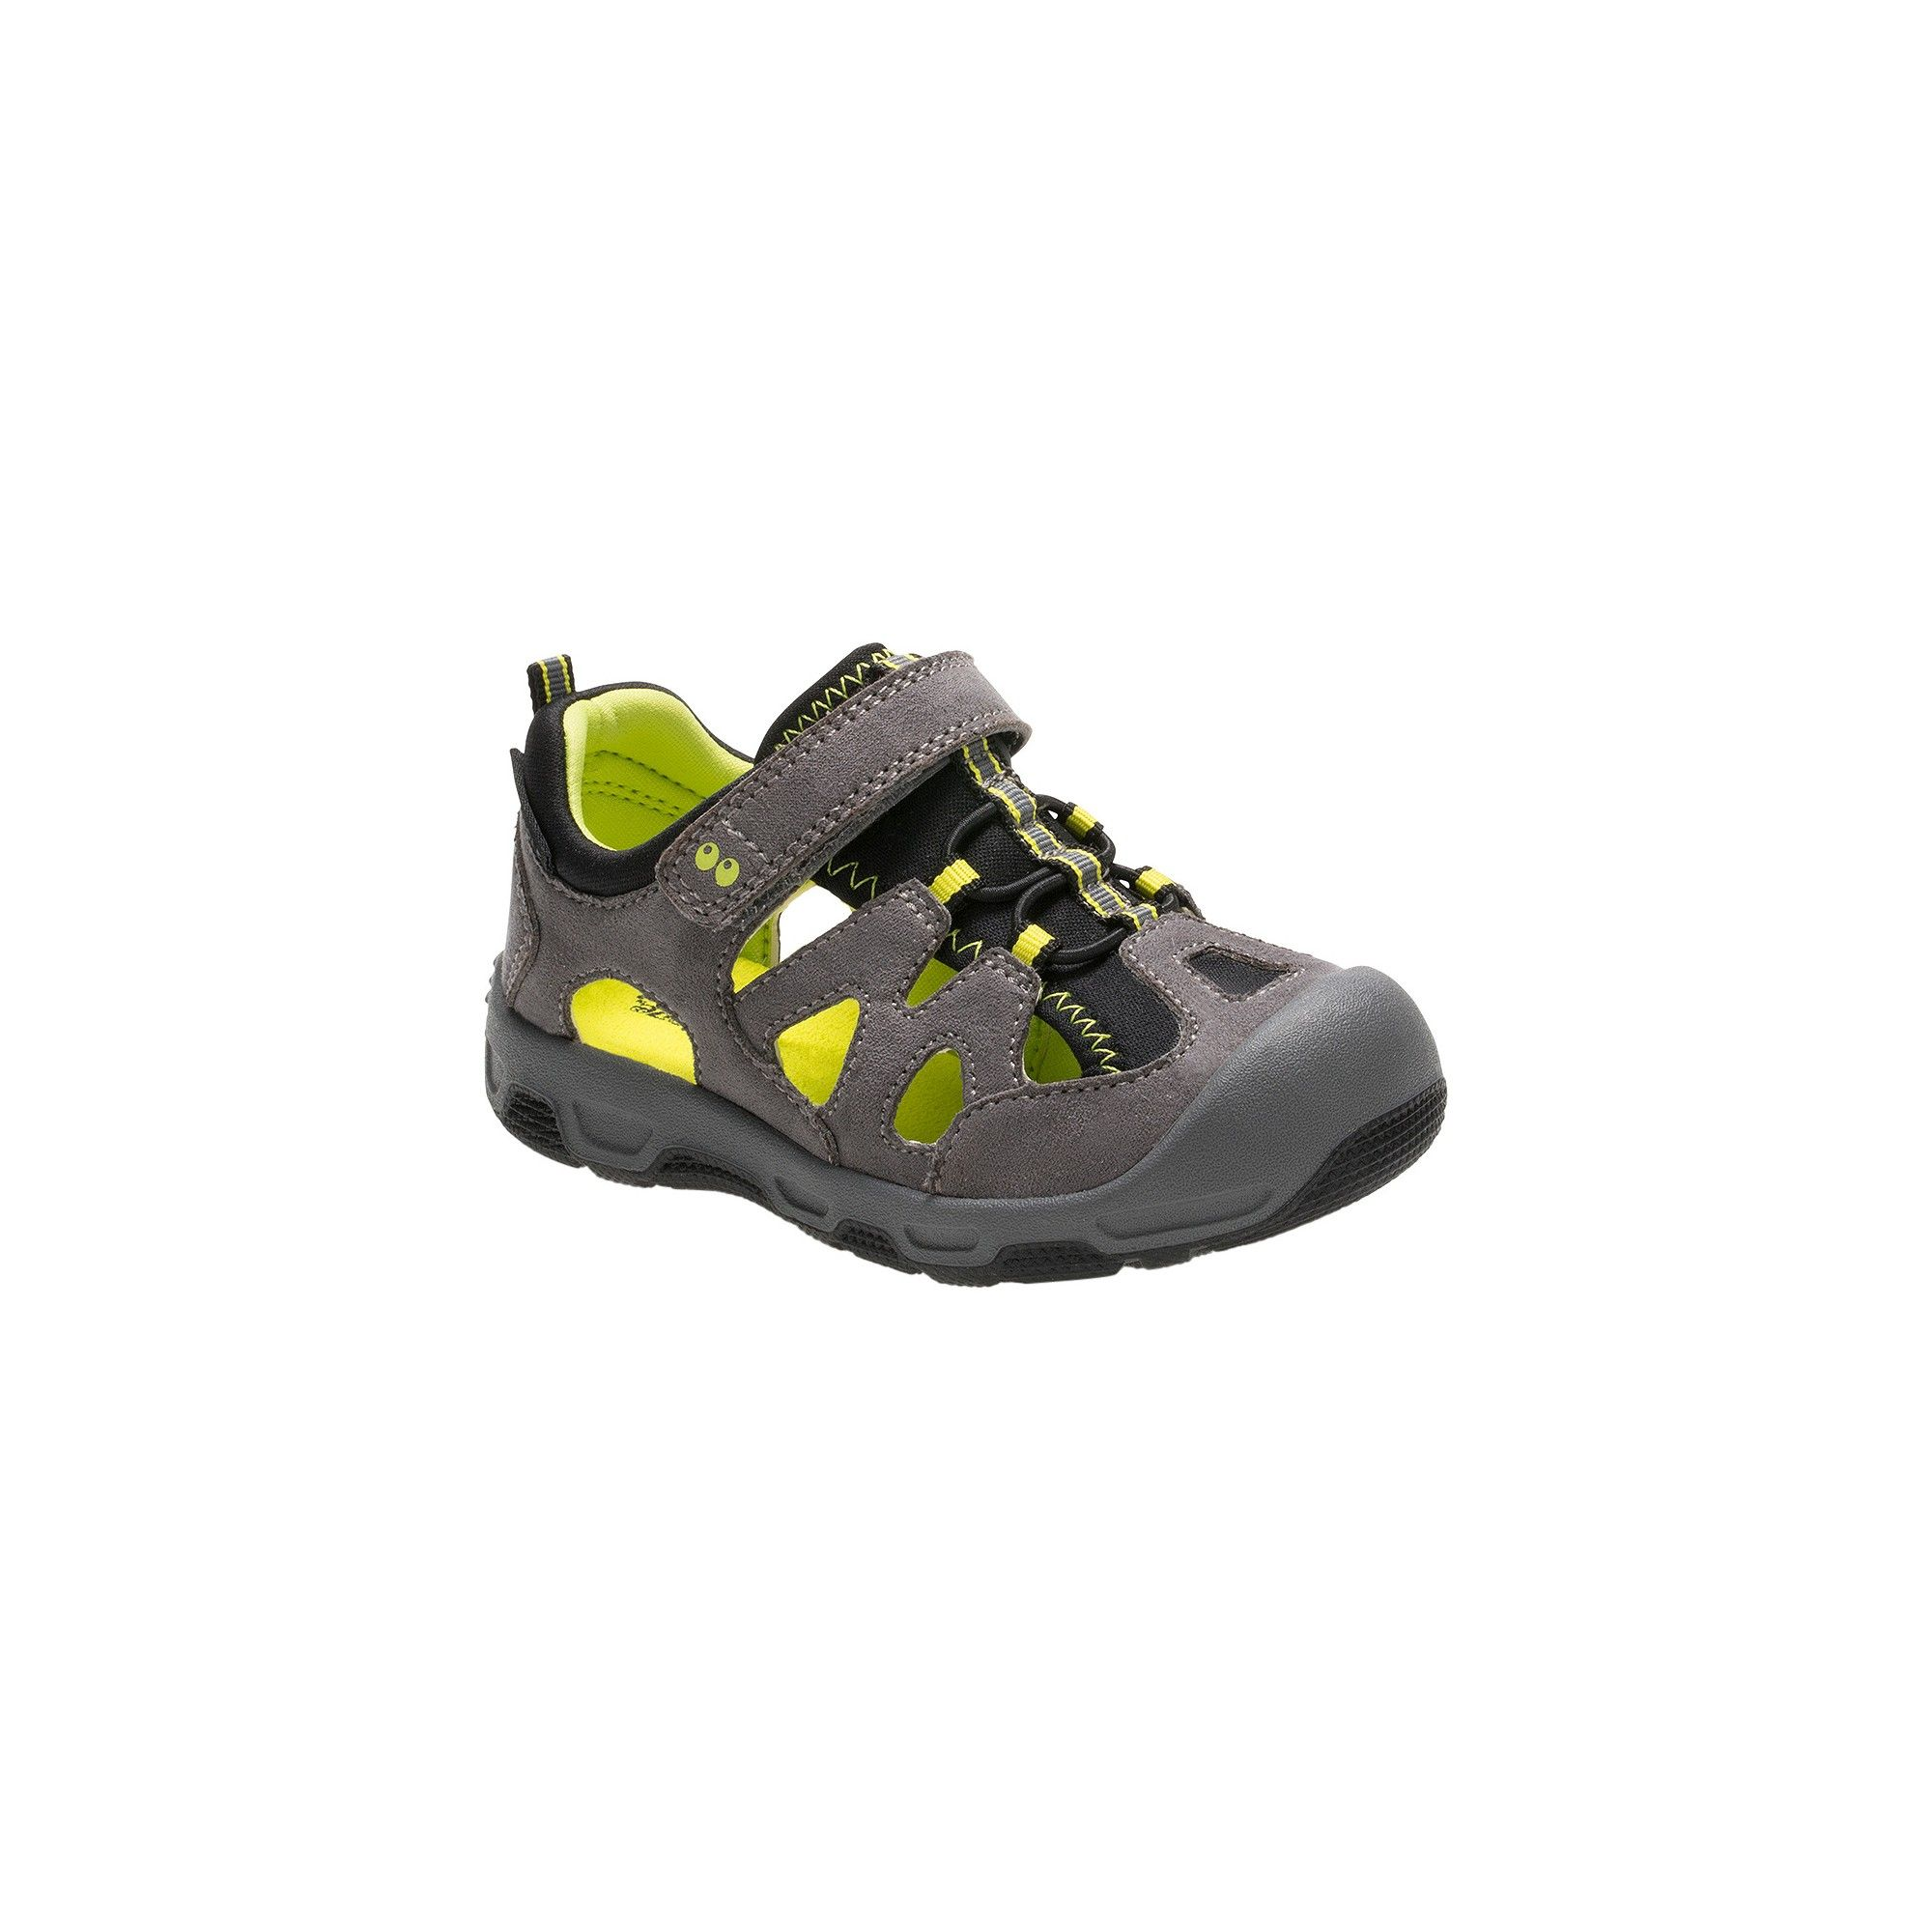 Toddler Boys Surprize by Stride Rite Deonte Hiking Sandals Gray